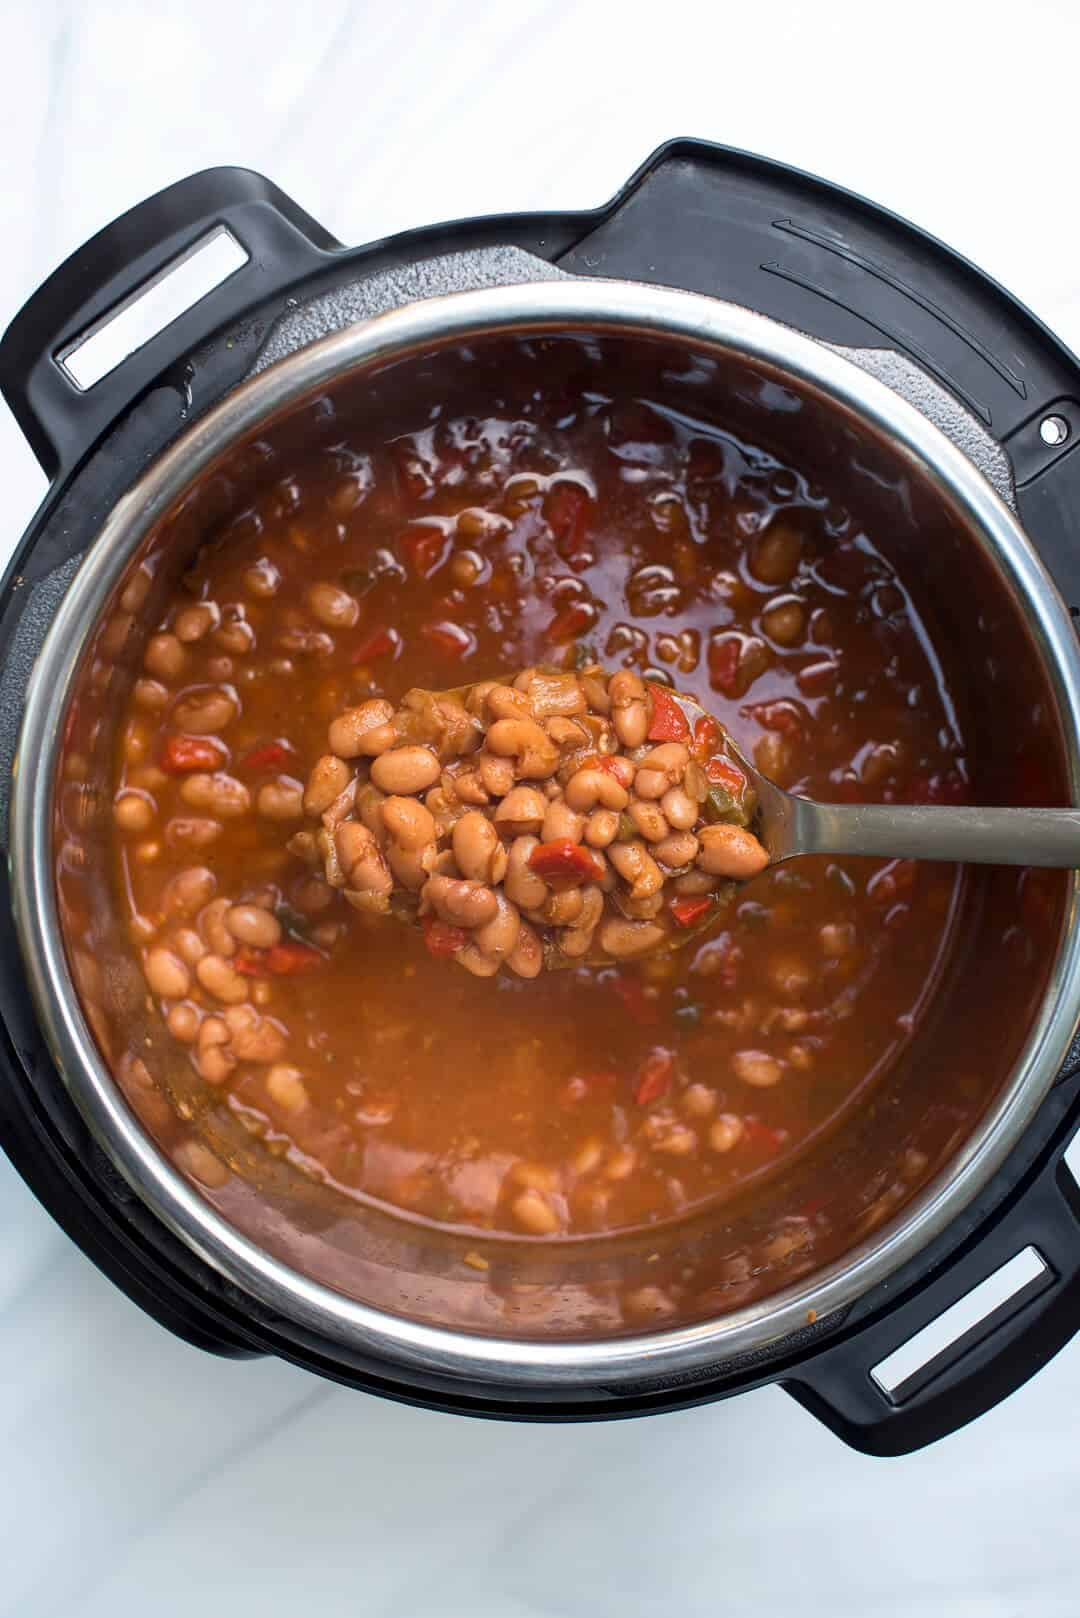 An over the top image showing a spoon lifting some of the Mexican Pinto Beans from the Instant Pot.